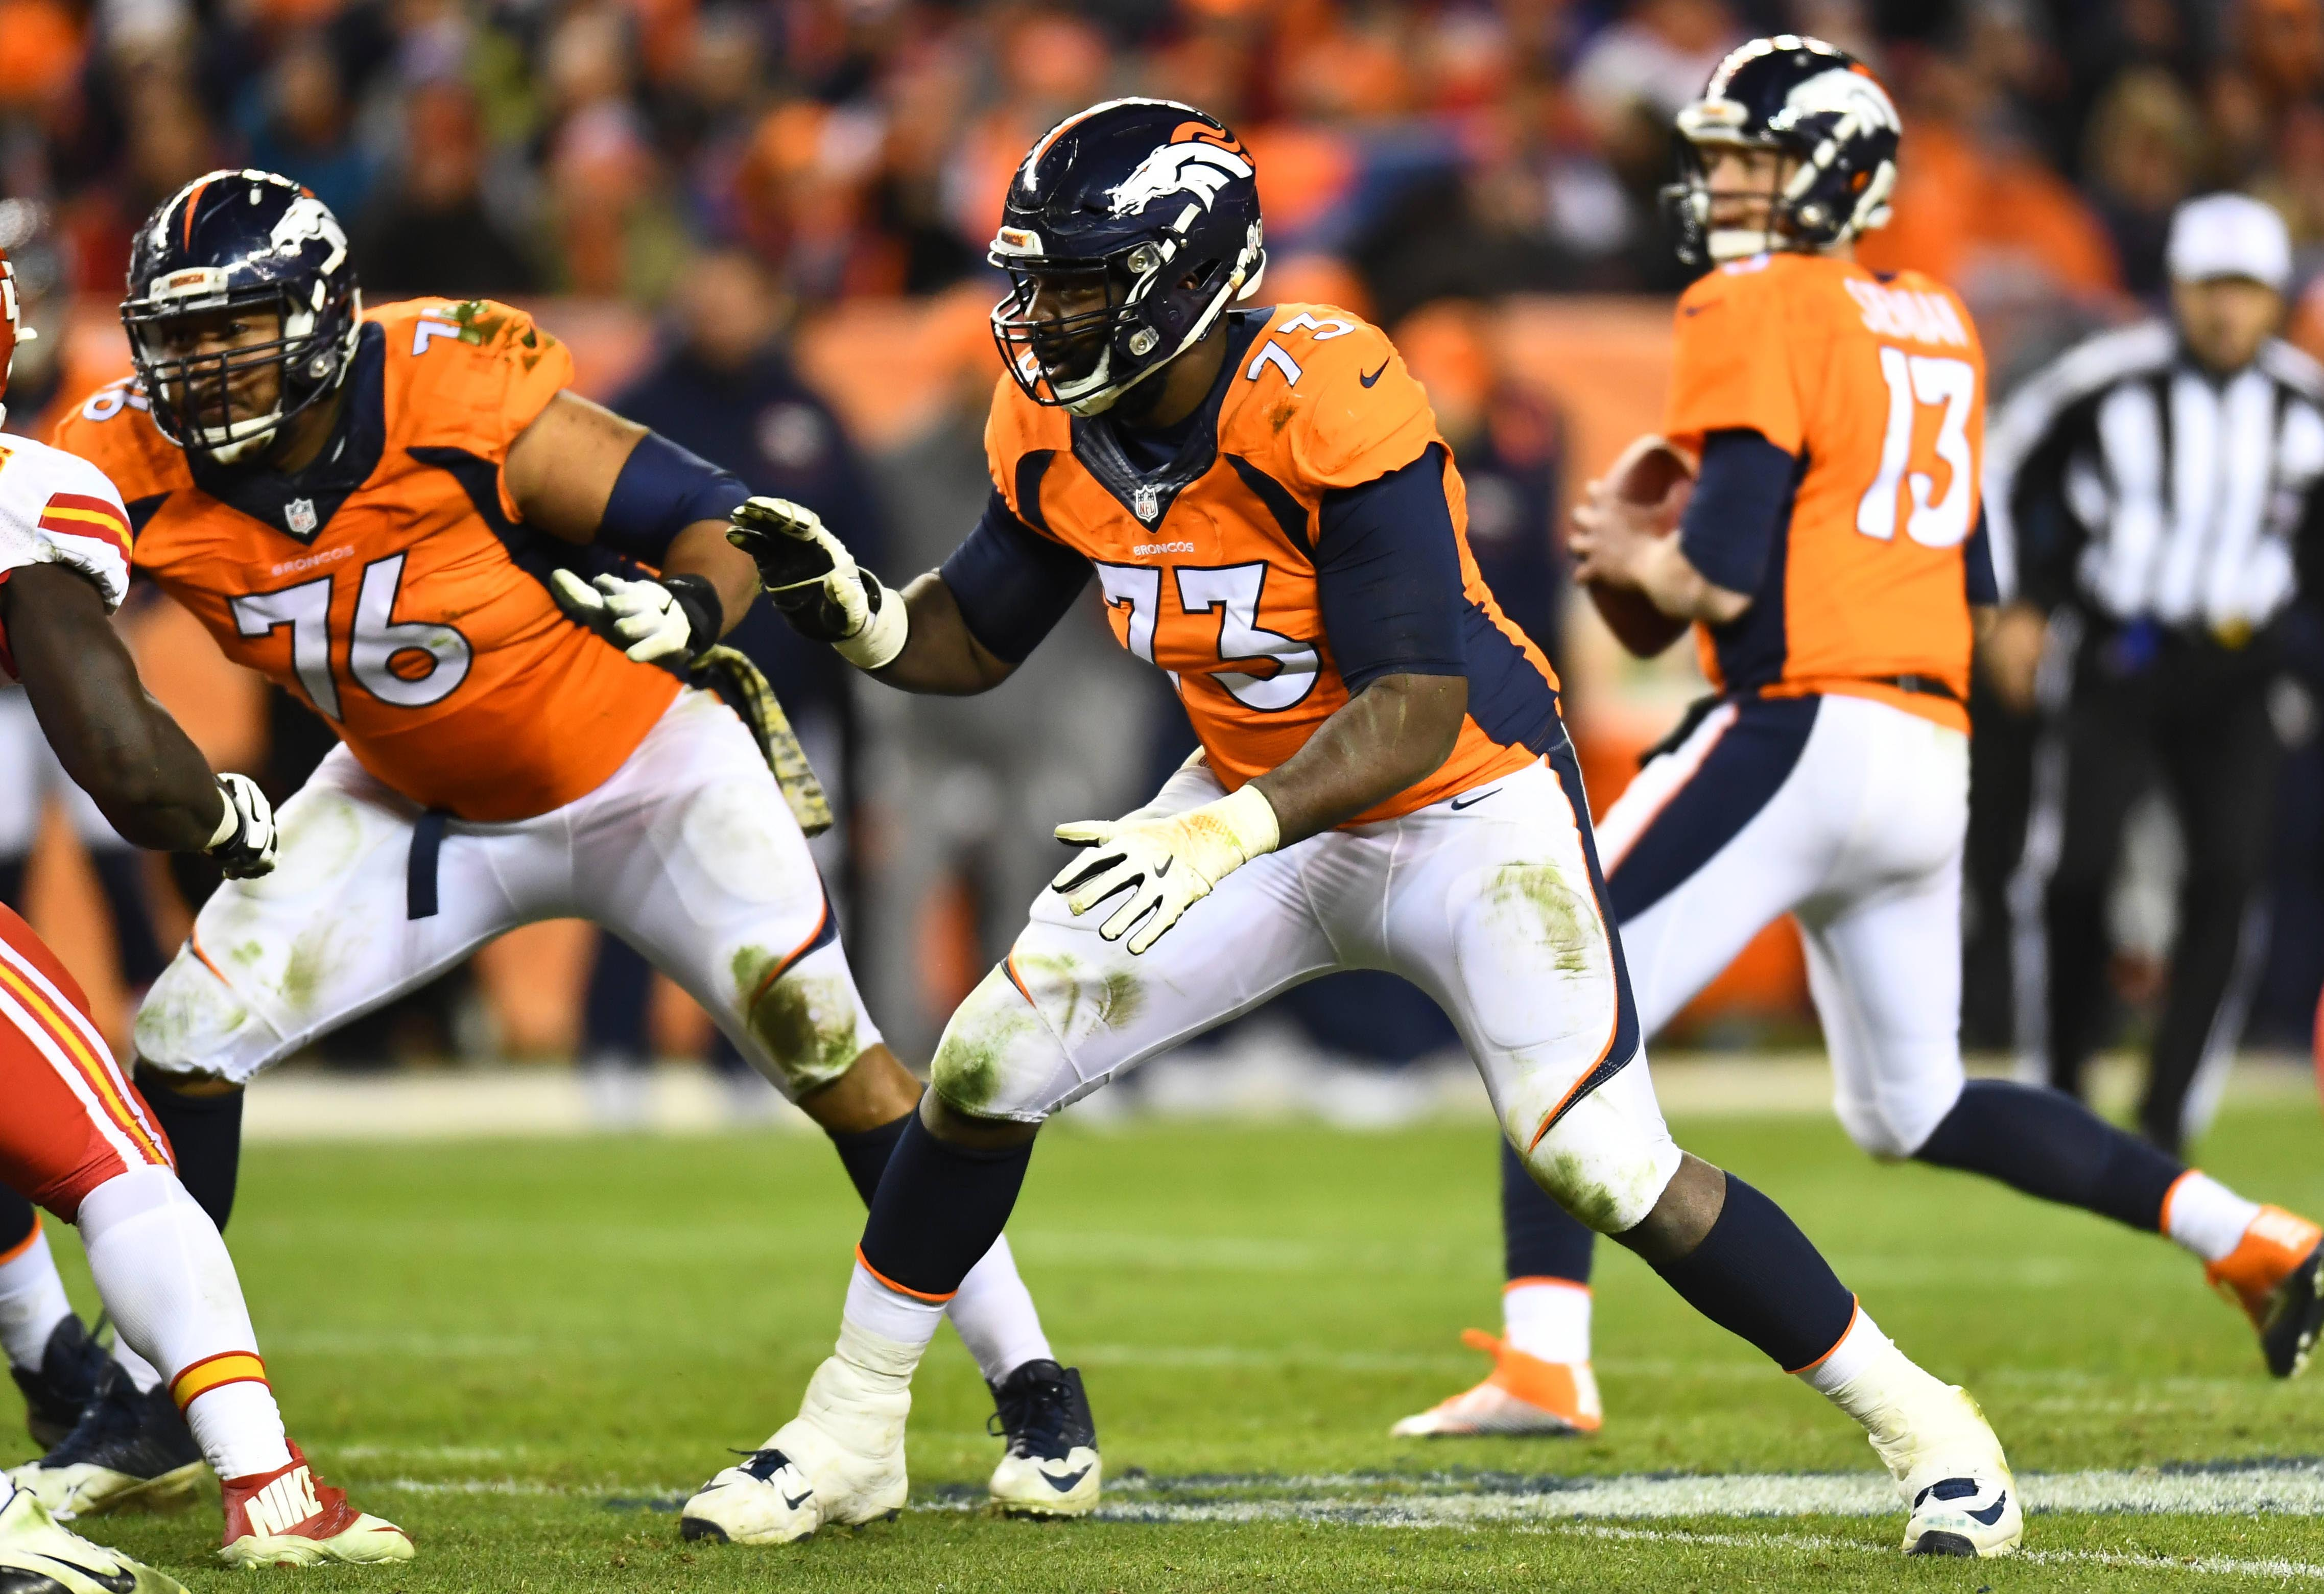 9722795-nfl-kansas-city-chiefs-at-denver-broncos